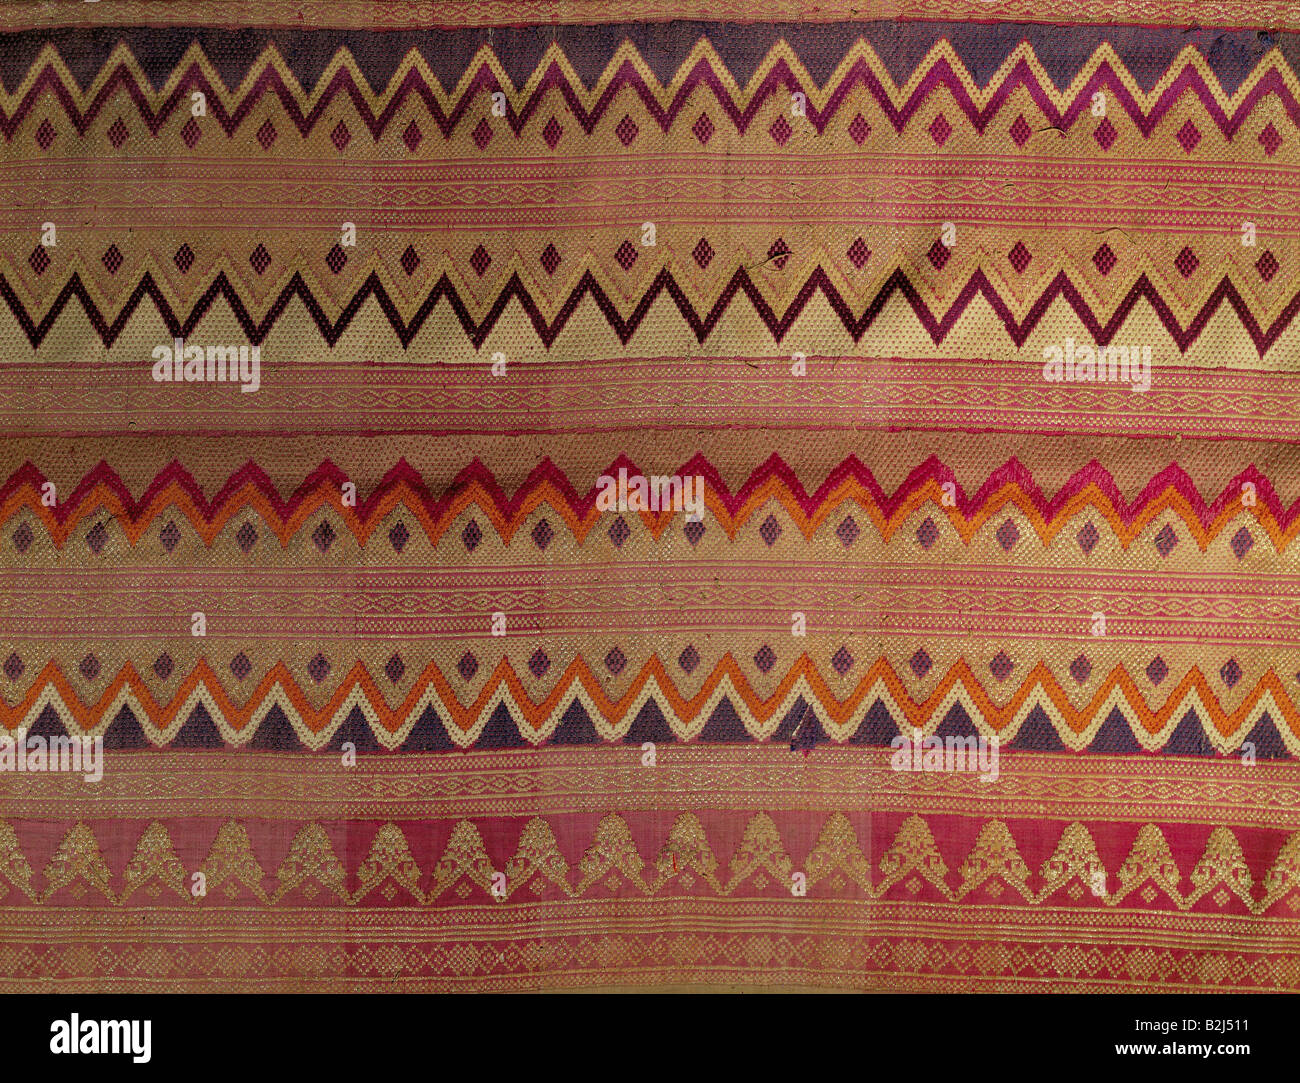 textile / fabric, brocade weaving, Indonesia, Schwaebisches Textilmuseum (Swabian Textile Museum), Mindelheim, historic, Stock Photo